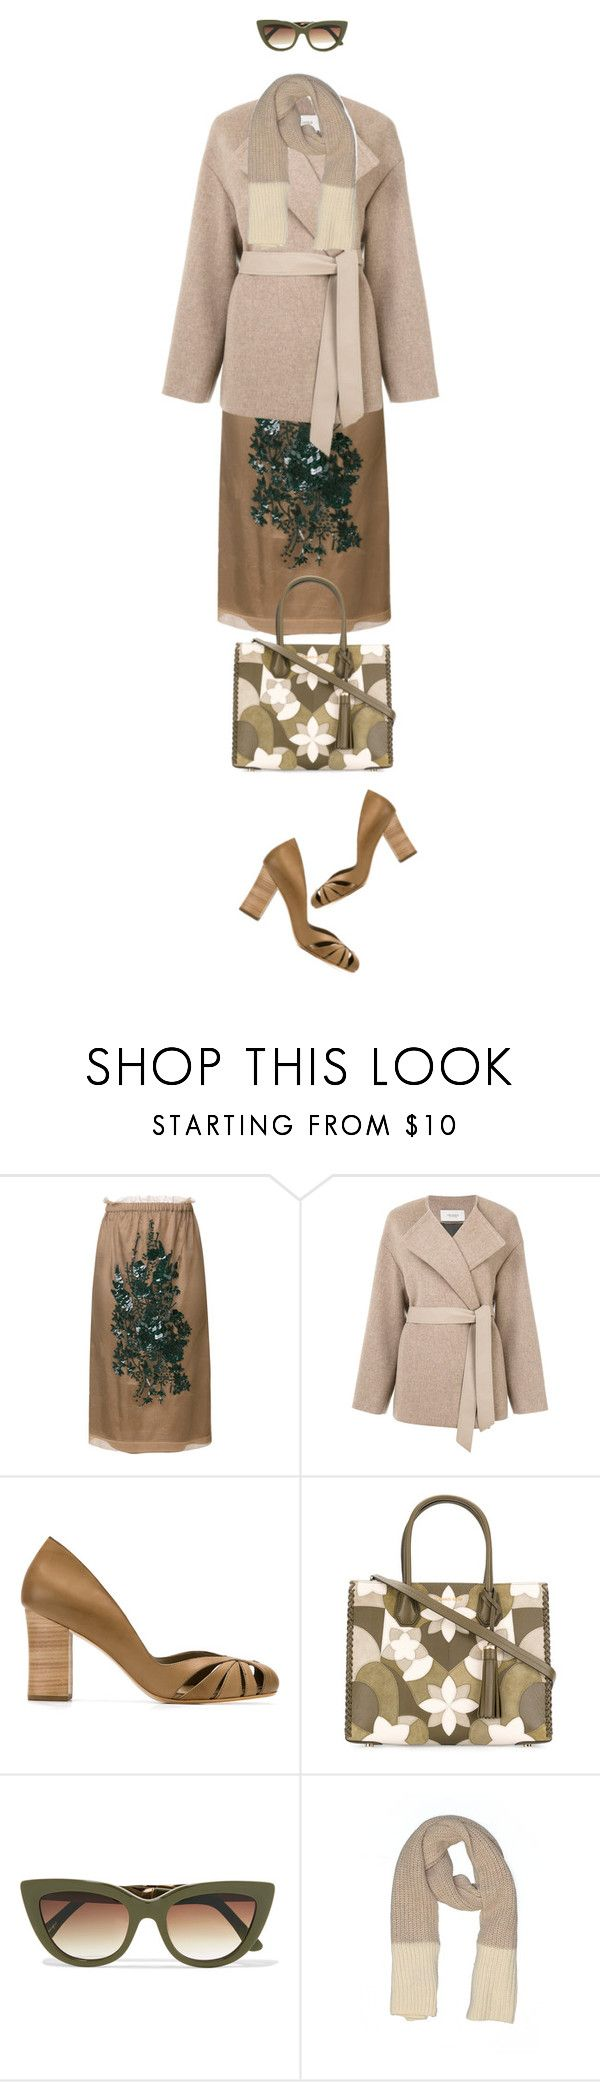 """Weekend"" by hani-bgd ❤ liked on Polyvore featuring N°21, Pringle of Scotland, Sarah Chofakian, MICHAEL Michael Kors, Sunday Somewhere and Gap"